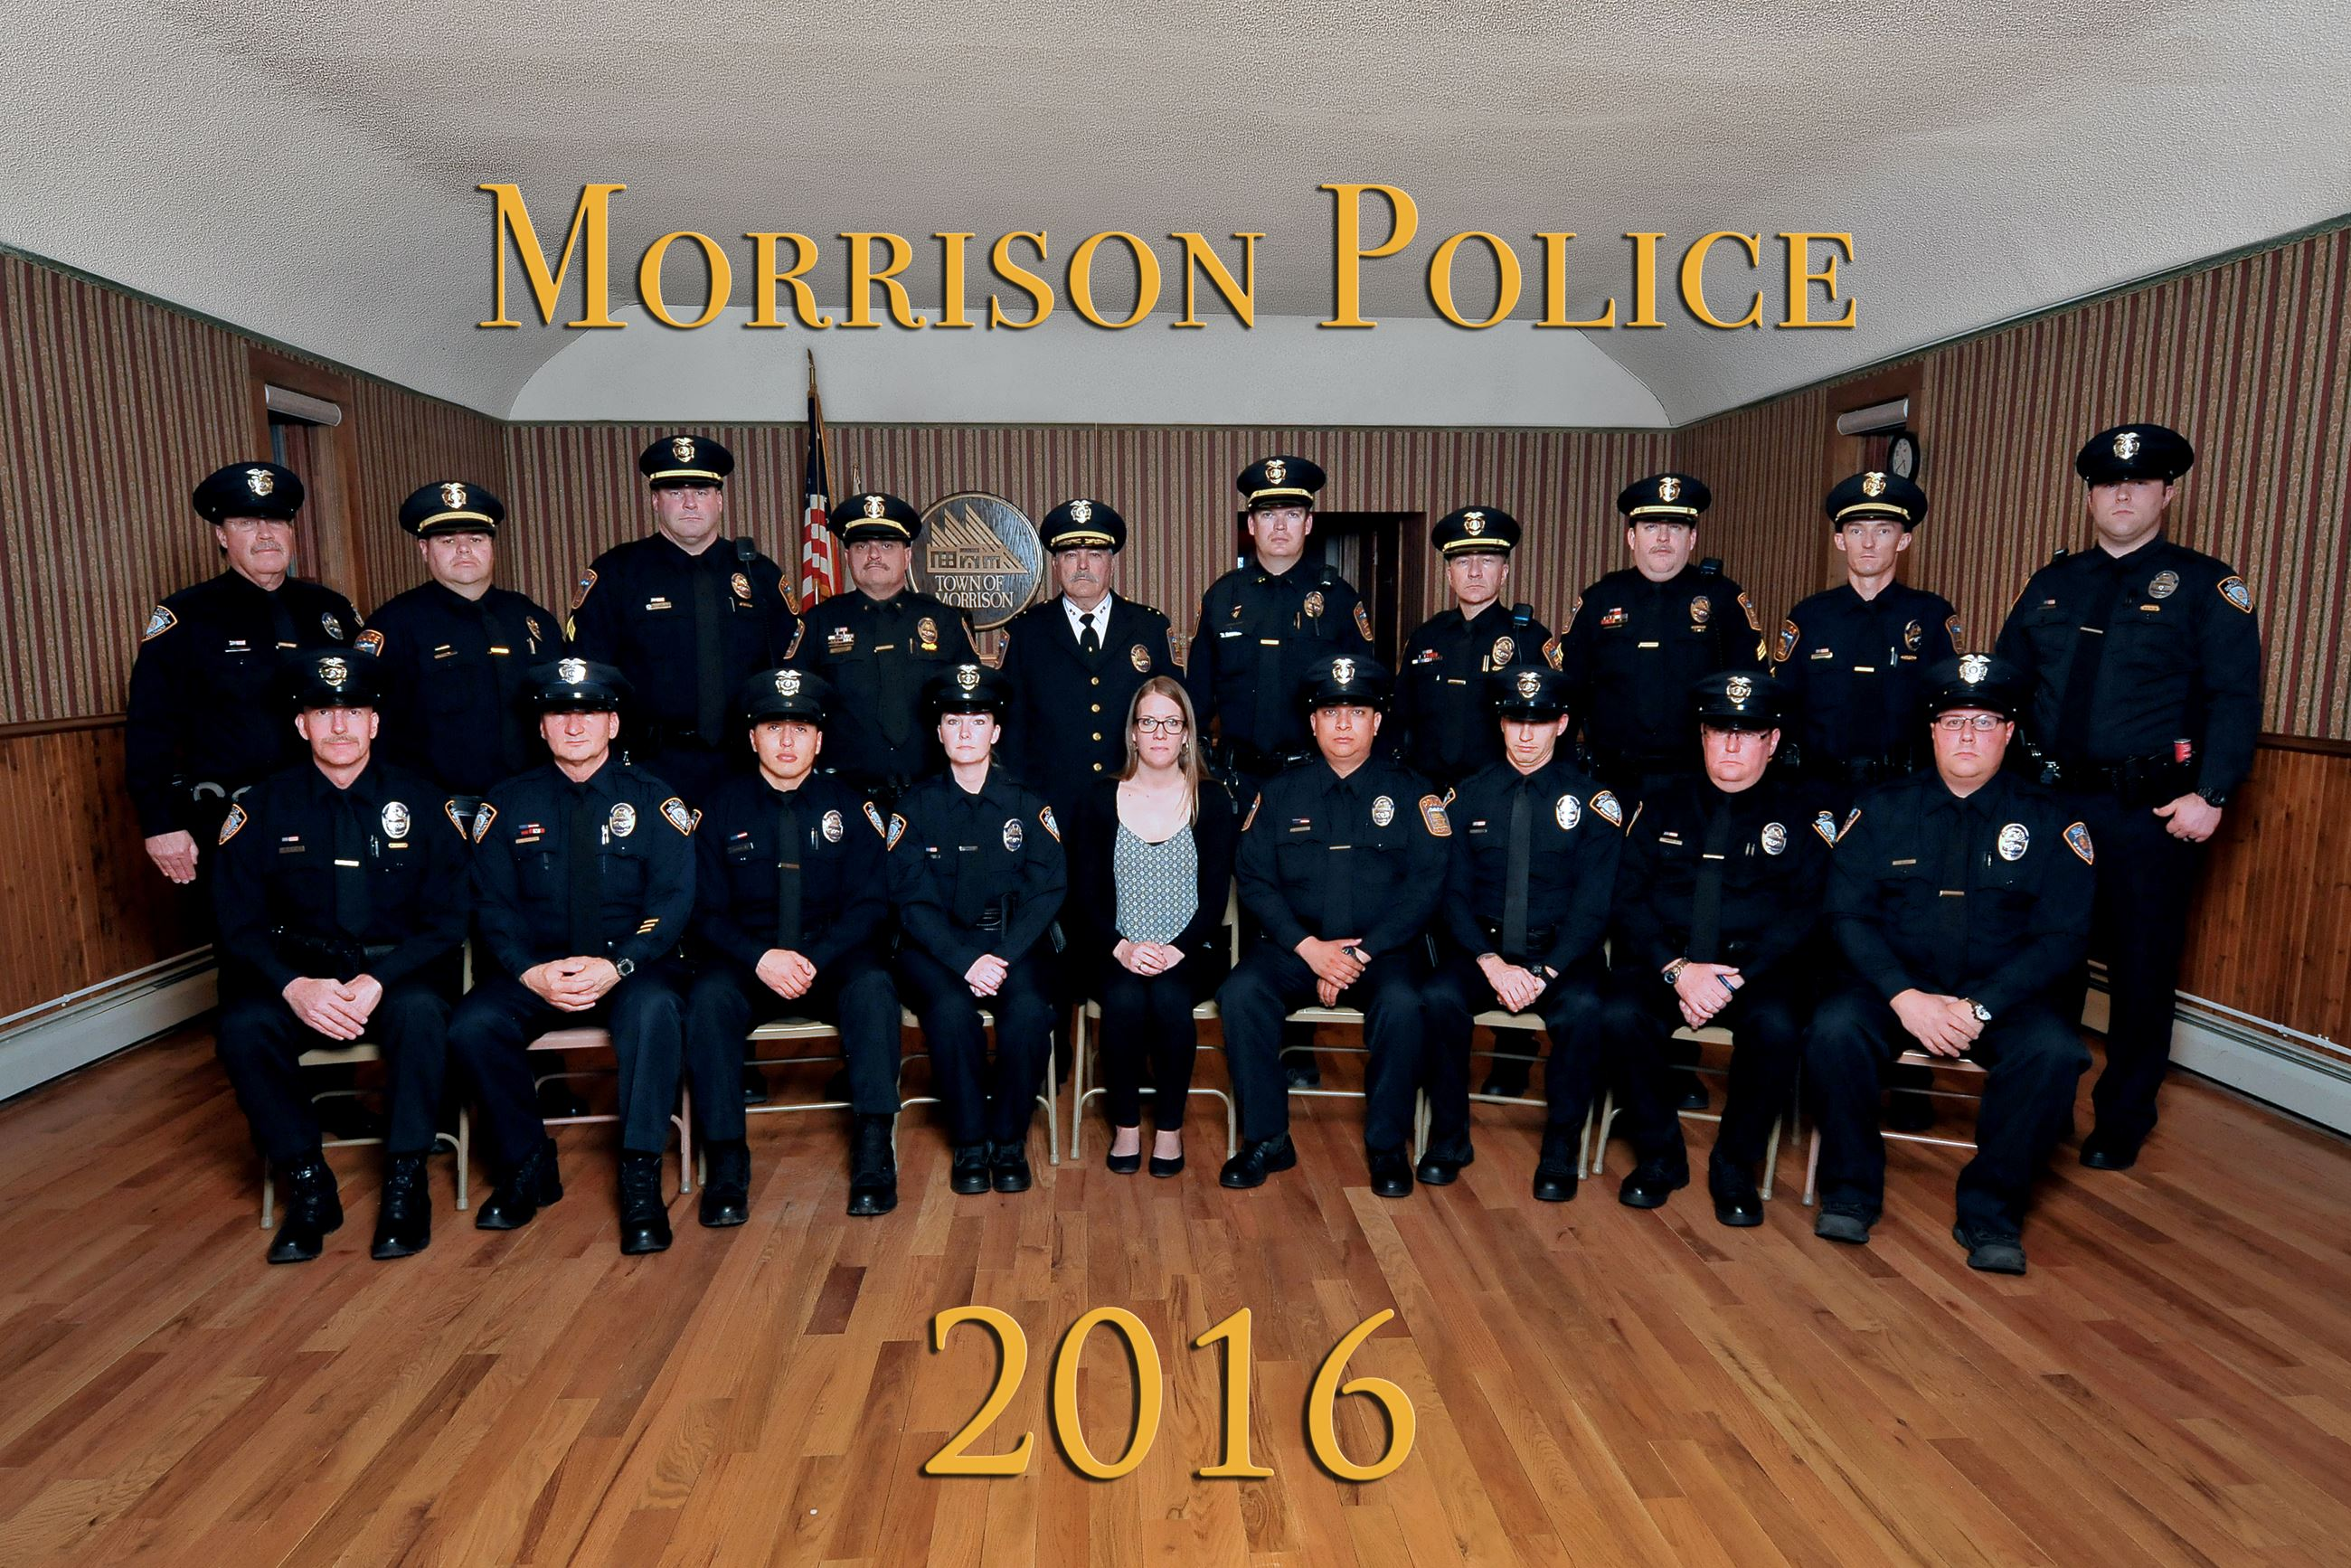 Morrison Police Department 2016